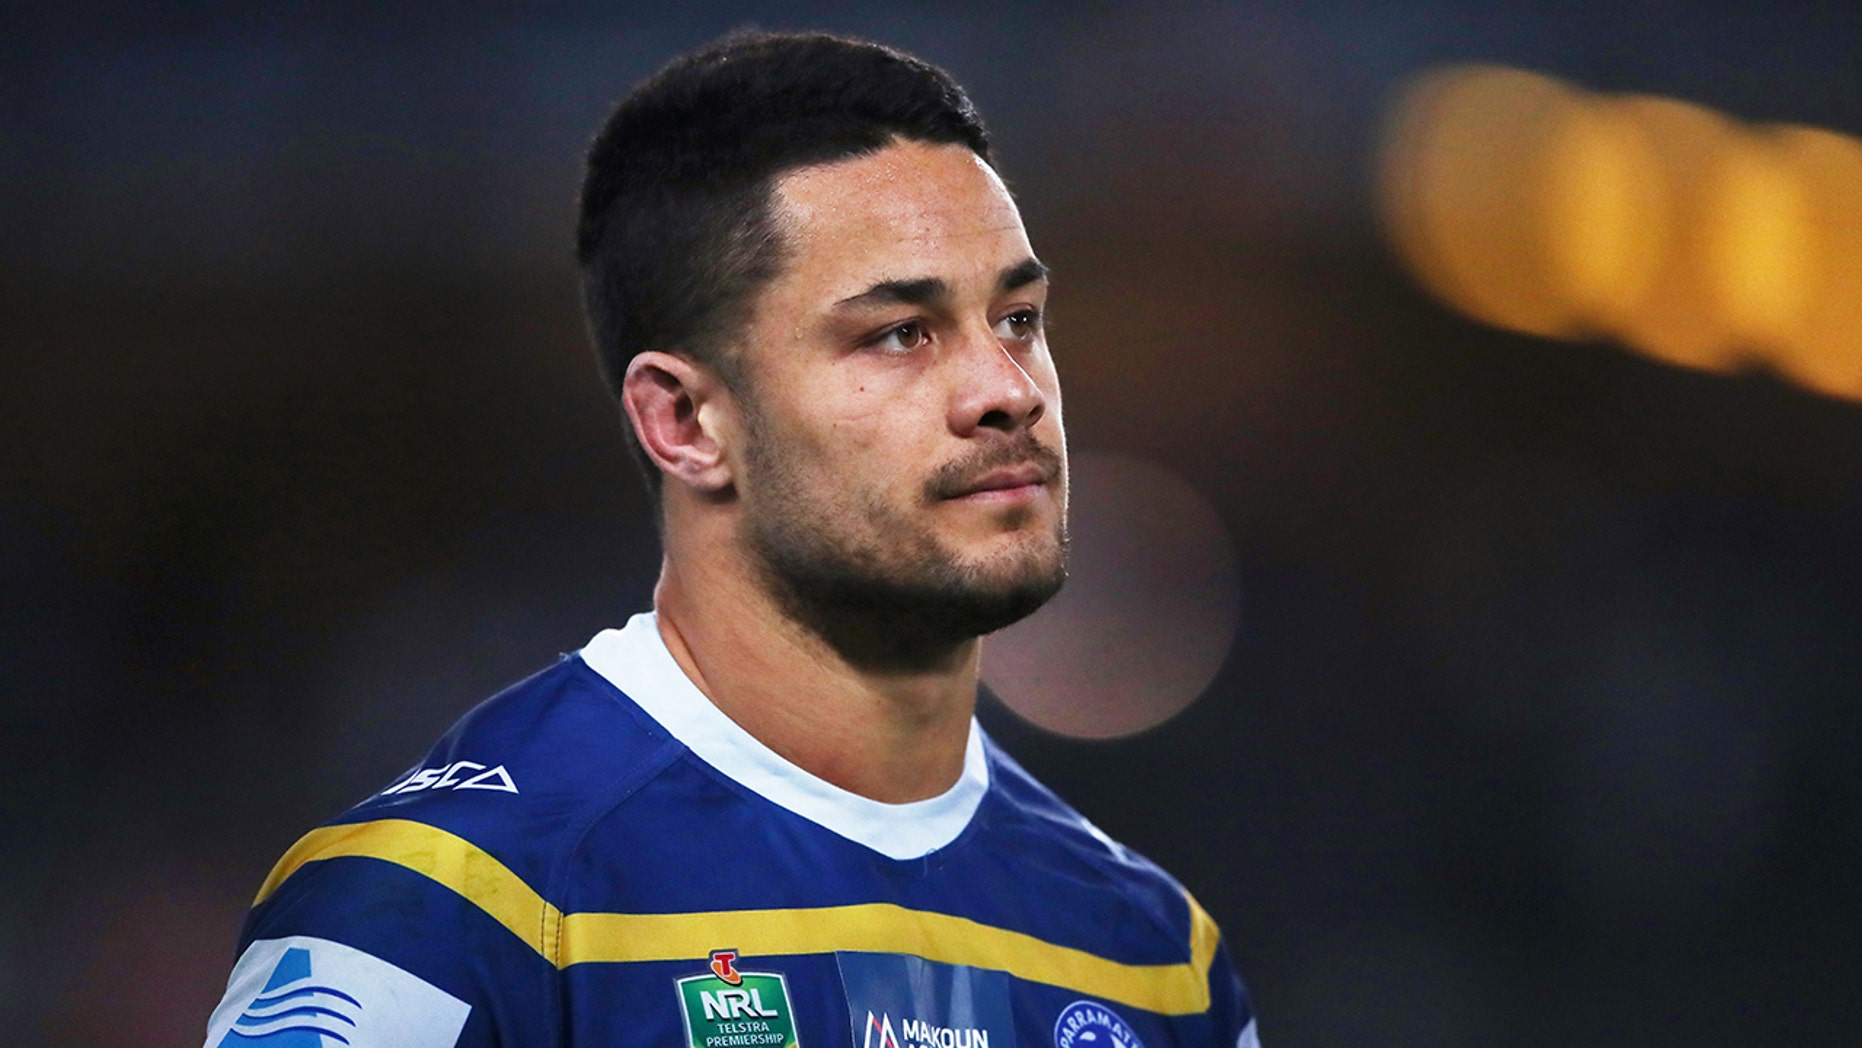 SYDNEY, AUSTRALIA - JULY 19: Jarryd Hayne of the Eels looks on during the round 19 NRL match between the Parramatta Eels and the Canterbury Bulldogs at ANZ Stadium on July 19, 2018 in Sydney, Australia. (Photo by Matt King/Getty Images)